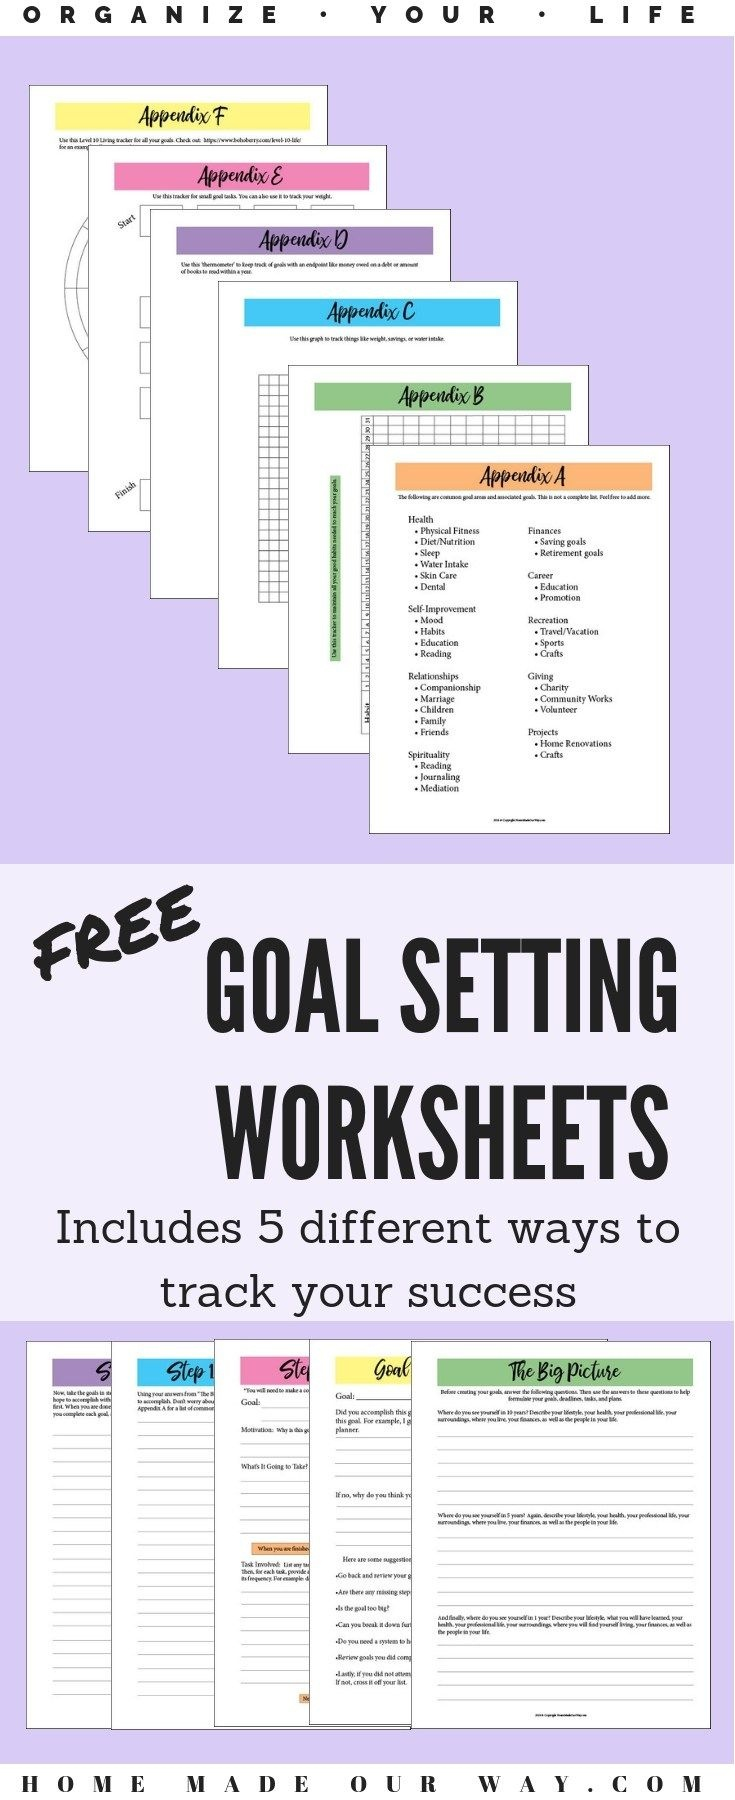 Free Goal Setting Worksheets For A Successful Year Any Time | Home - Free Printable Home Organization Worksheets